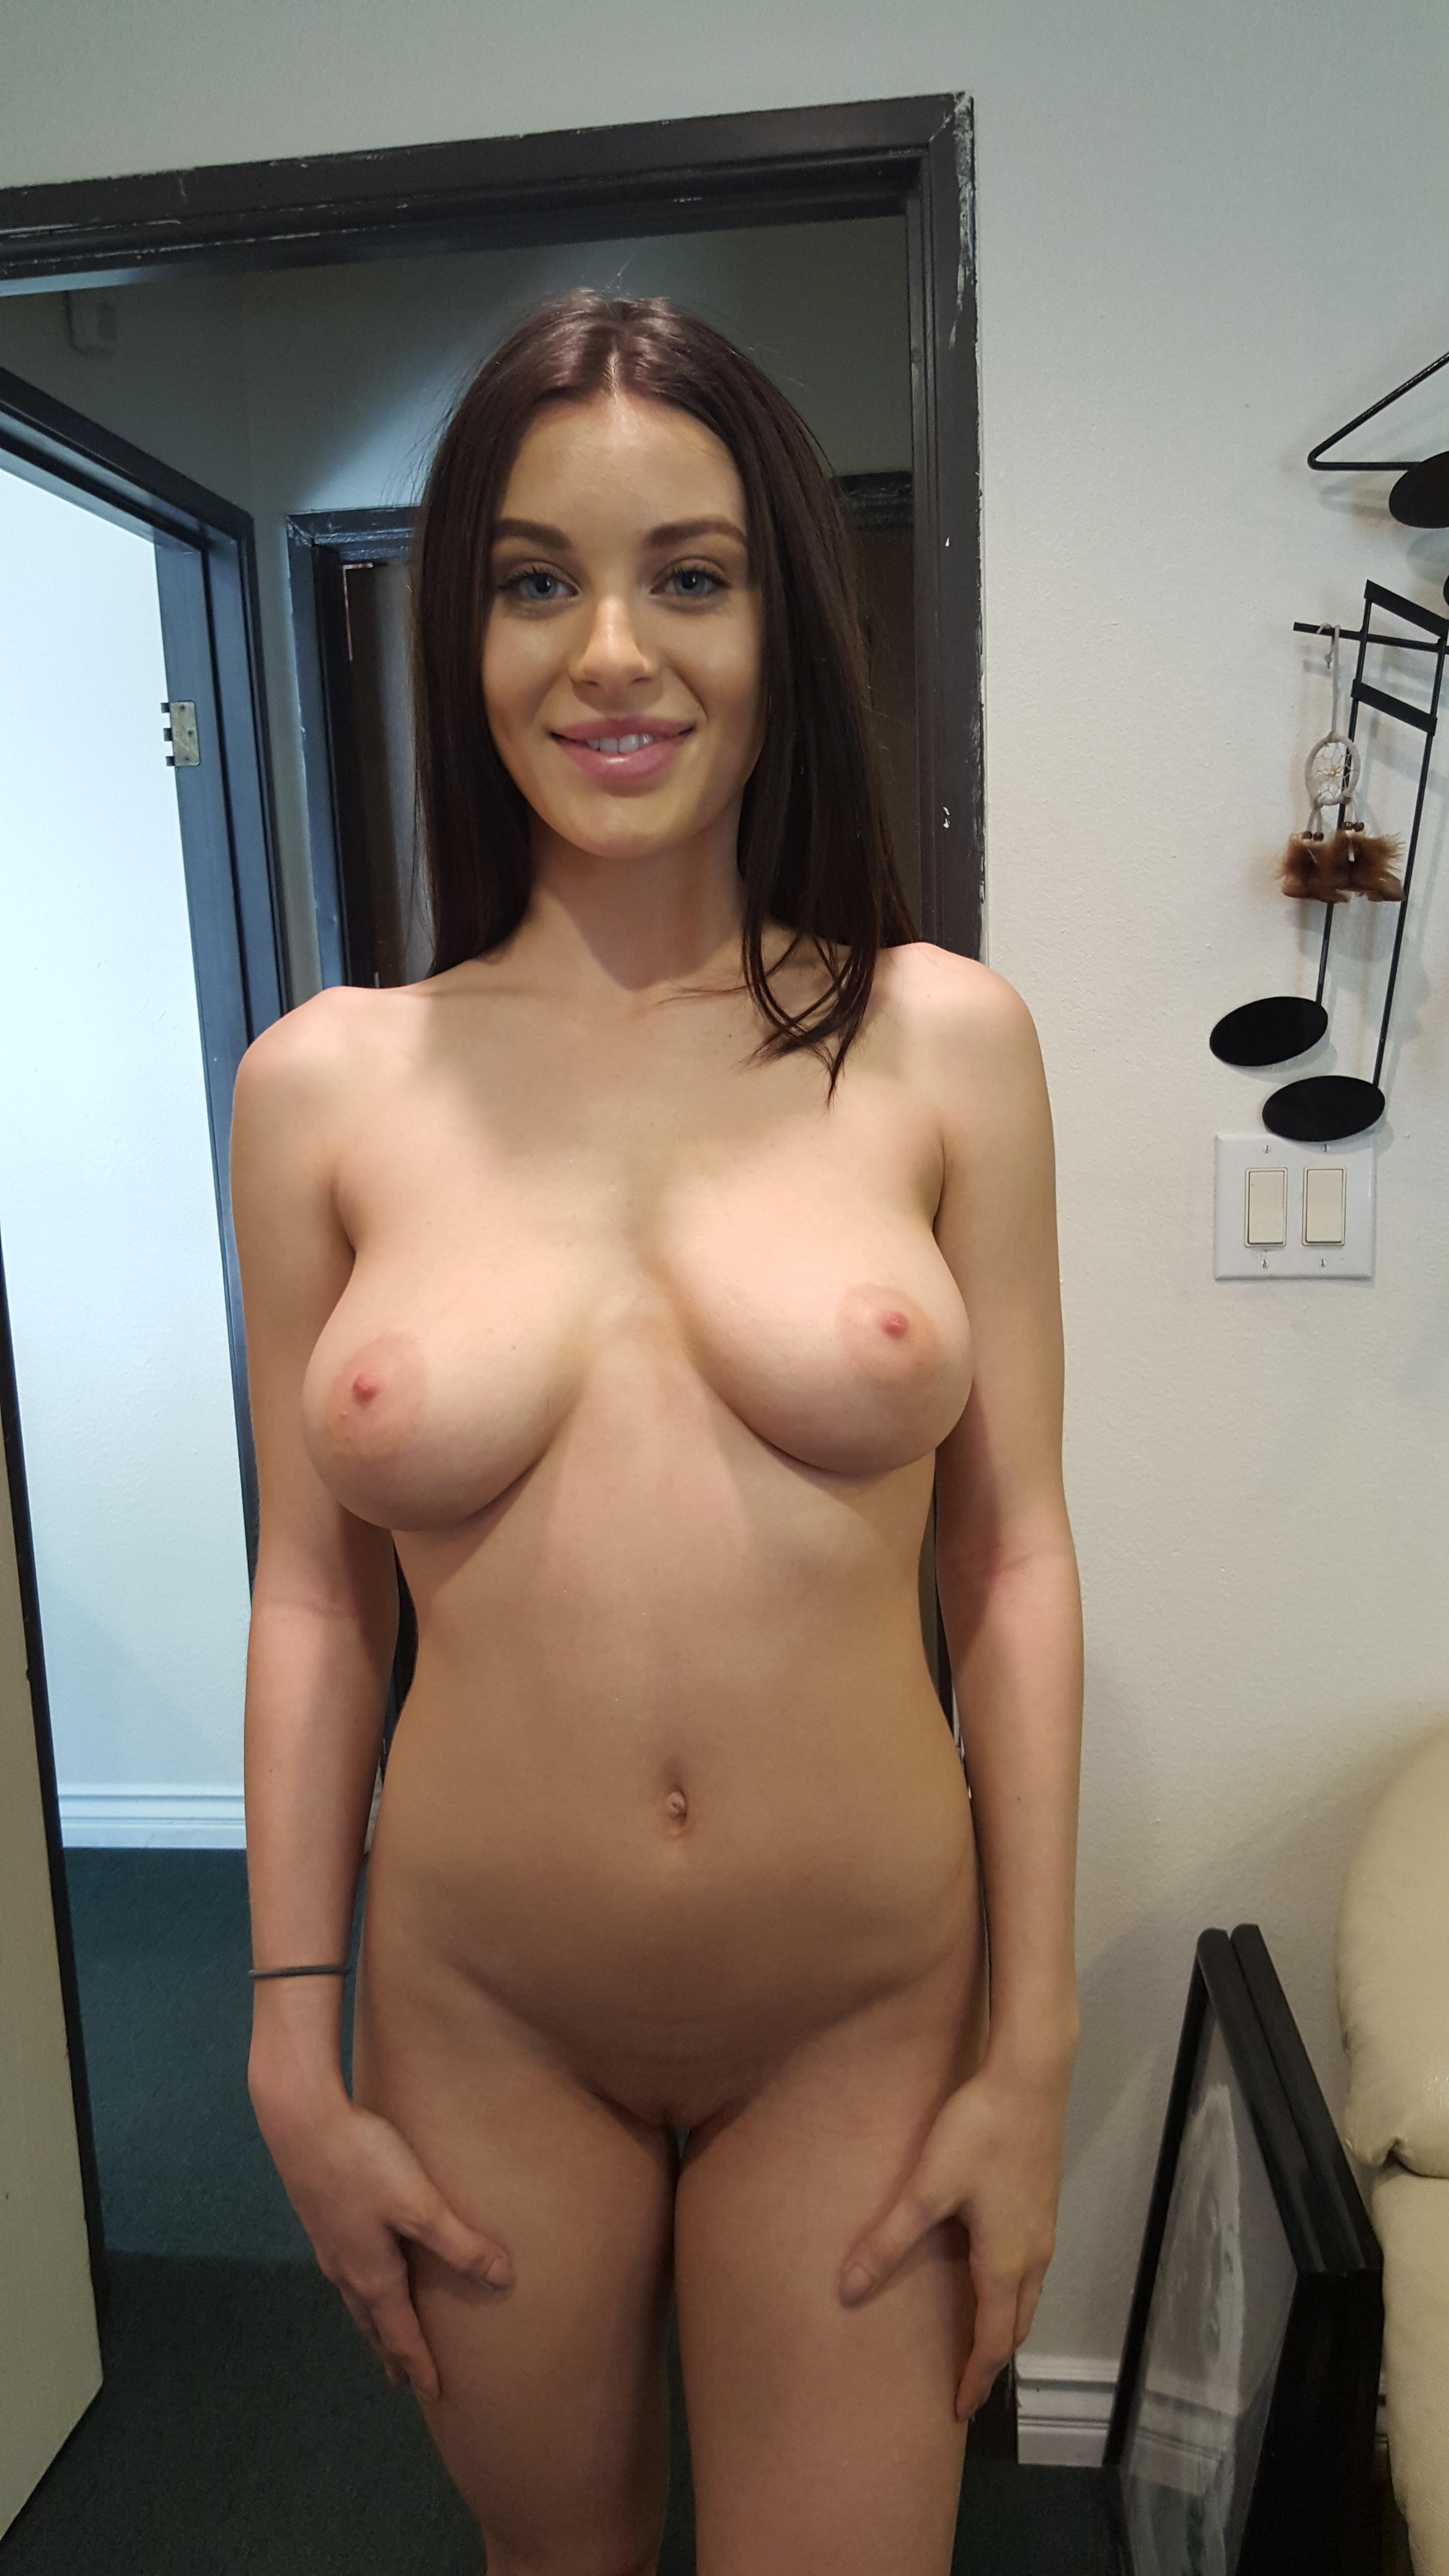 Lana Rhoades Nude Private Snap Chat - Sexy Now Nude Teens-4301